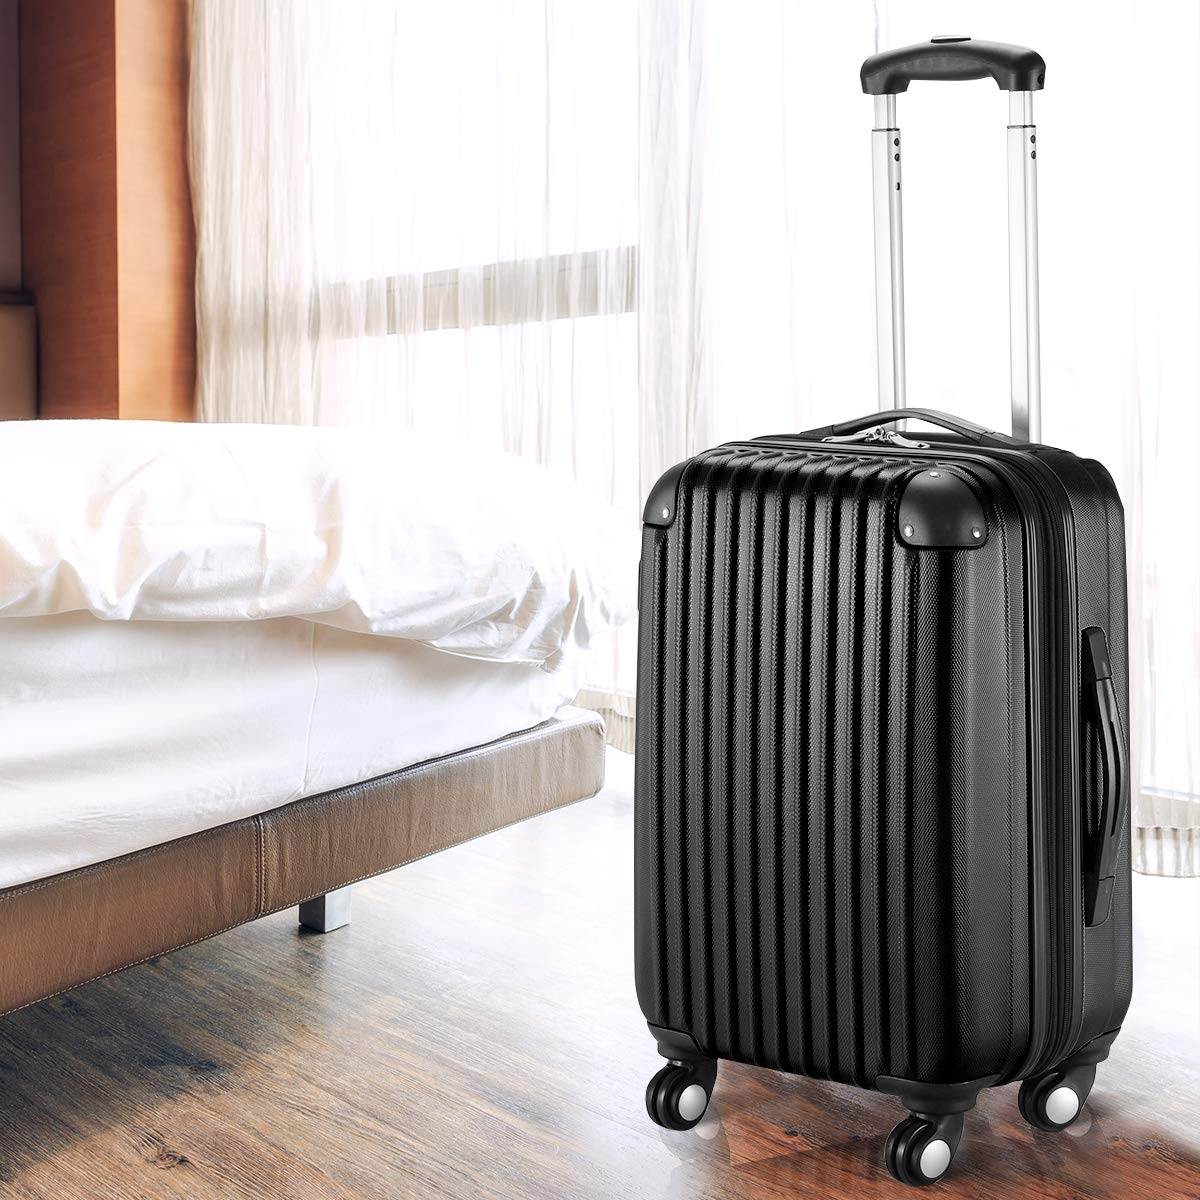 Goplus 20'' ABS Carry On Luggage Expandable Hardside Travel Bag Trolley Rolling Suitcase GLOBALWAY (Black) by Goplus (Image #5)